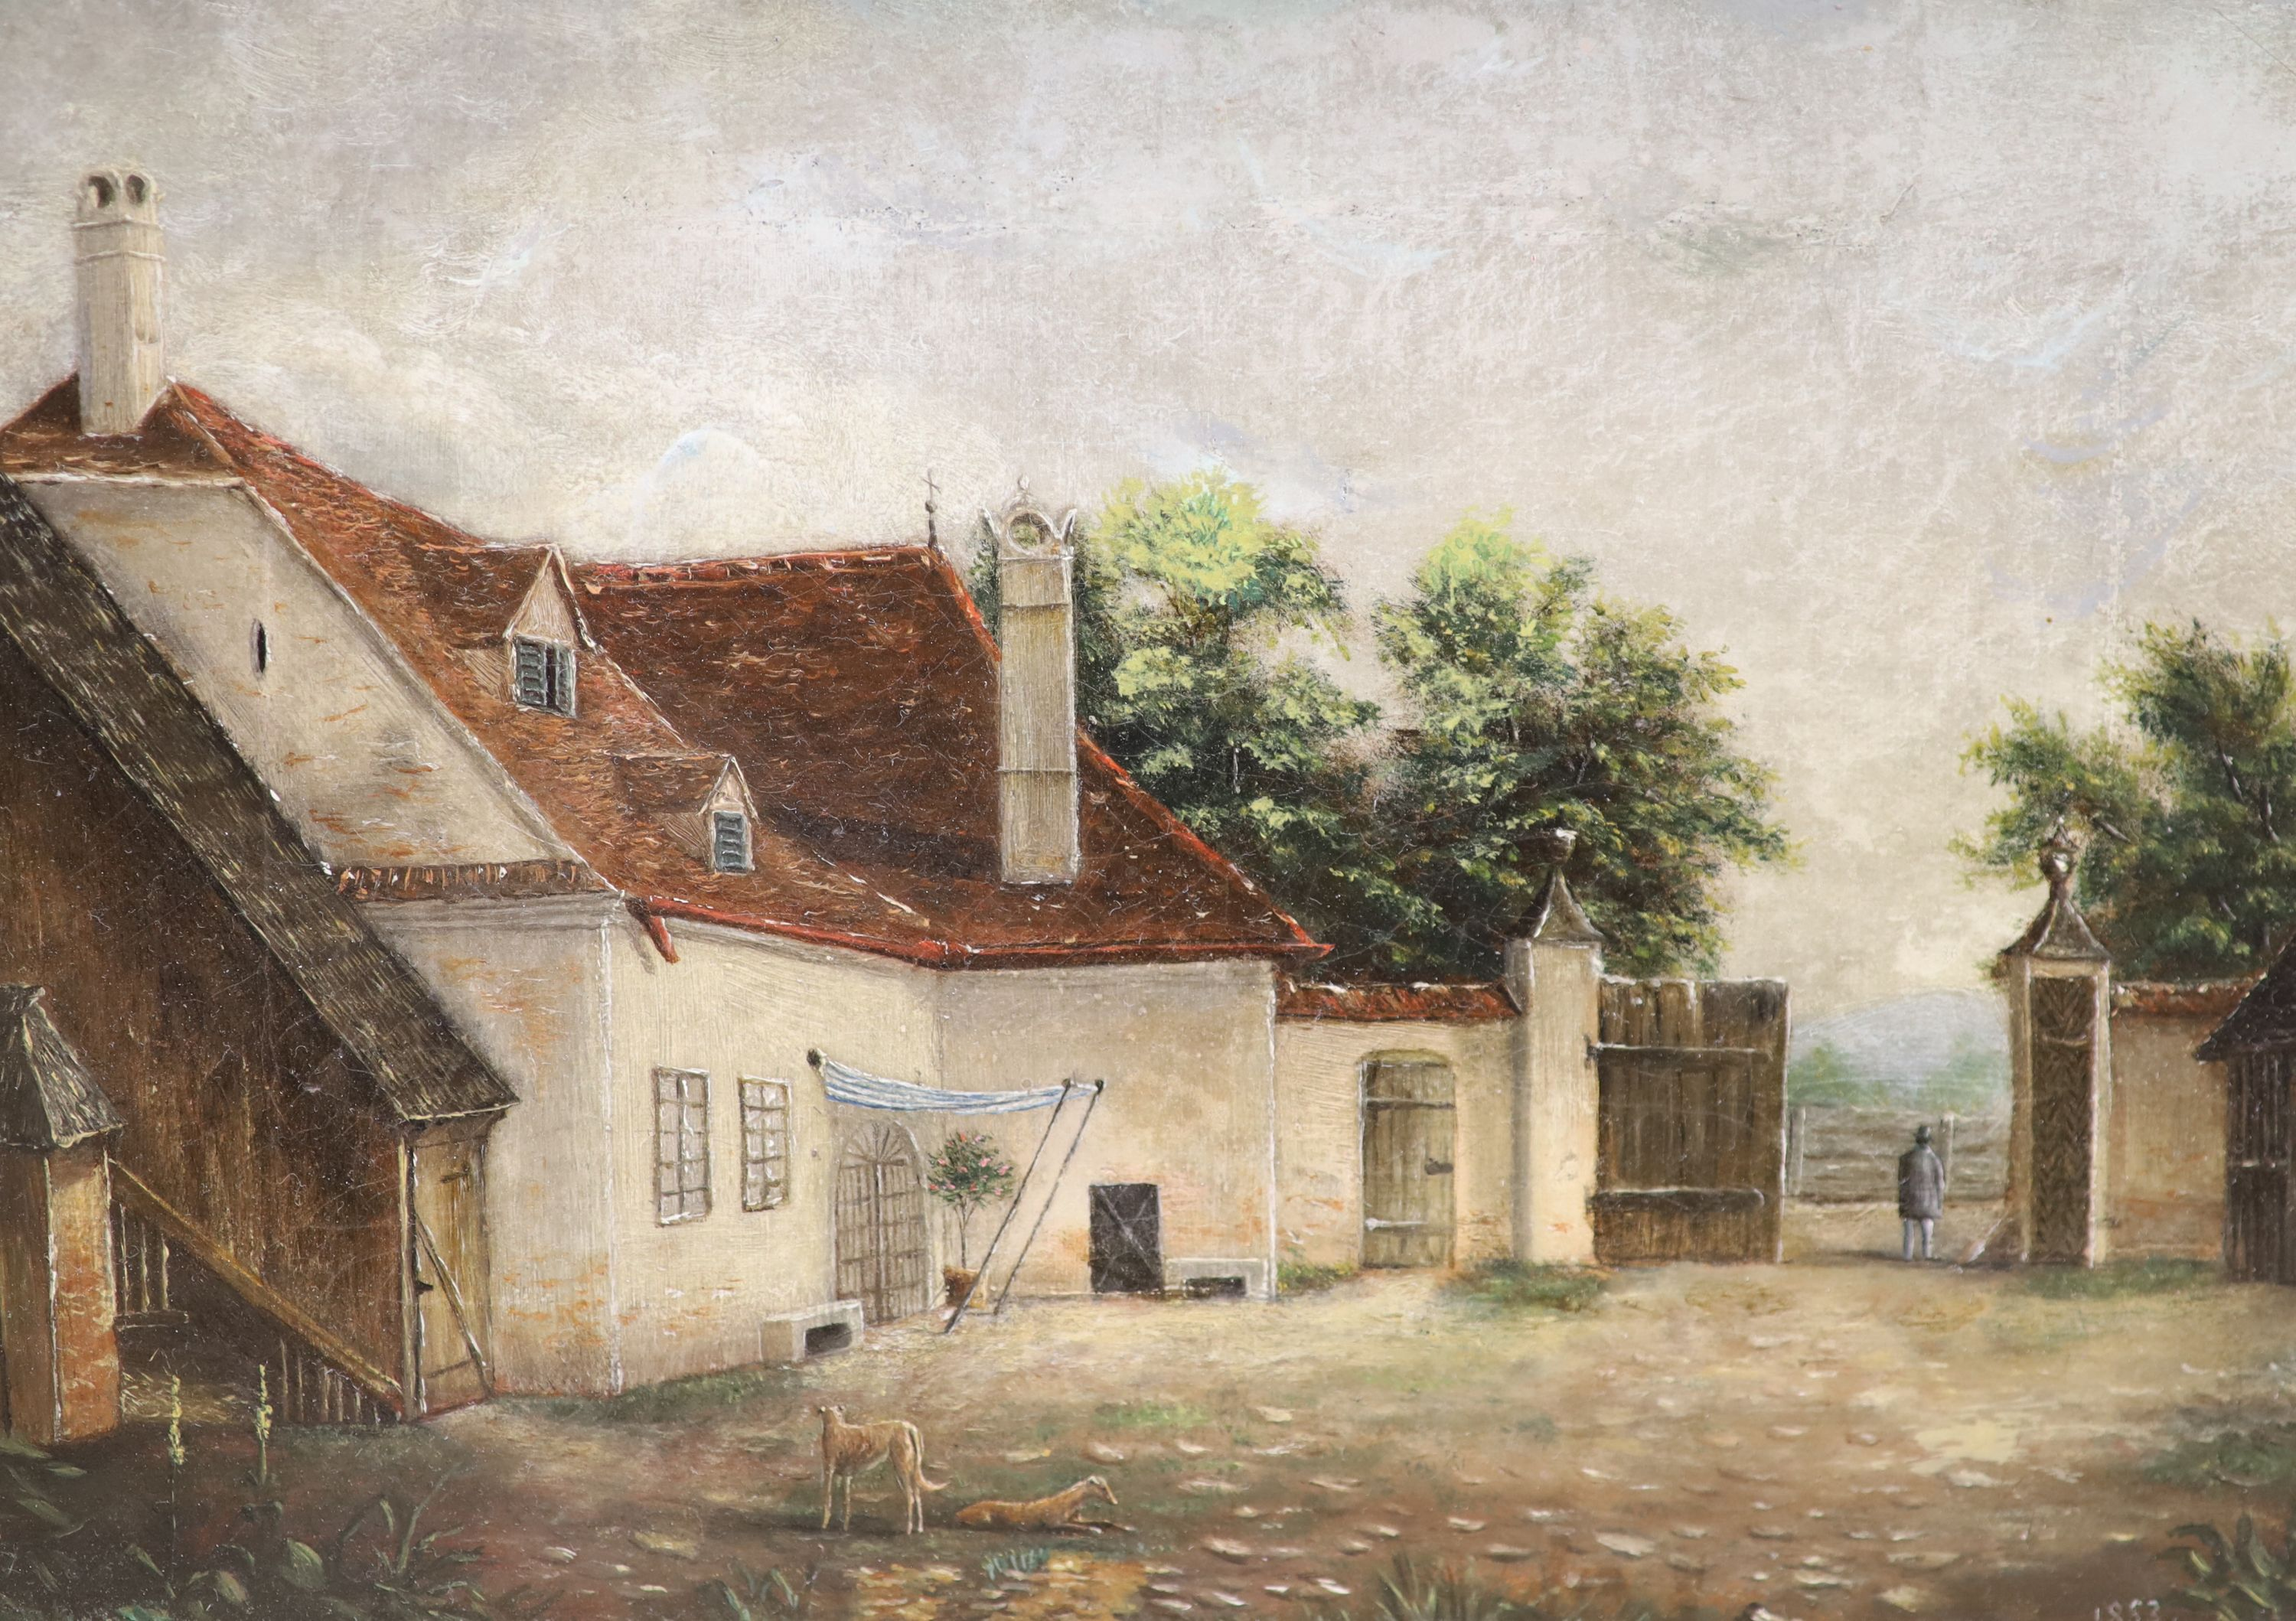 Victorian School, oil on canvas, Courtyard scene with dogs and figure in a gateway, dated 1853, 18